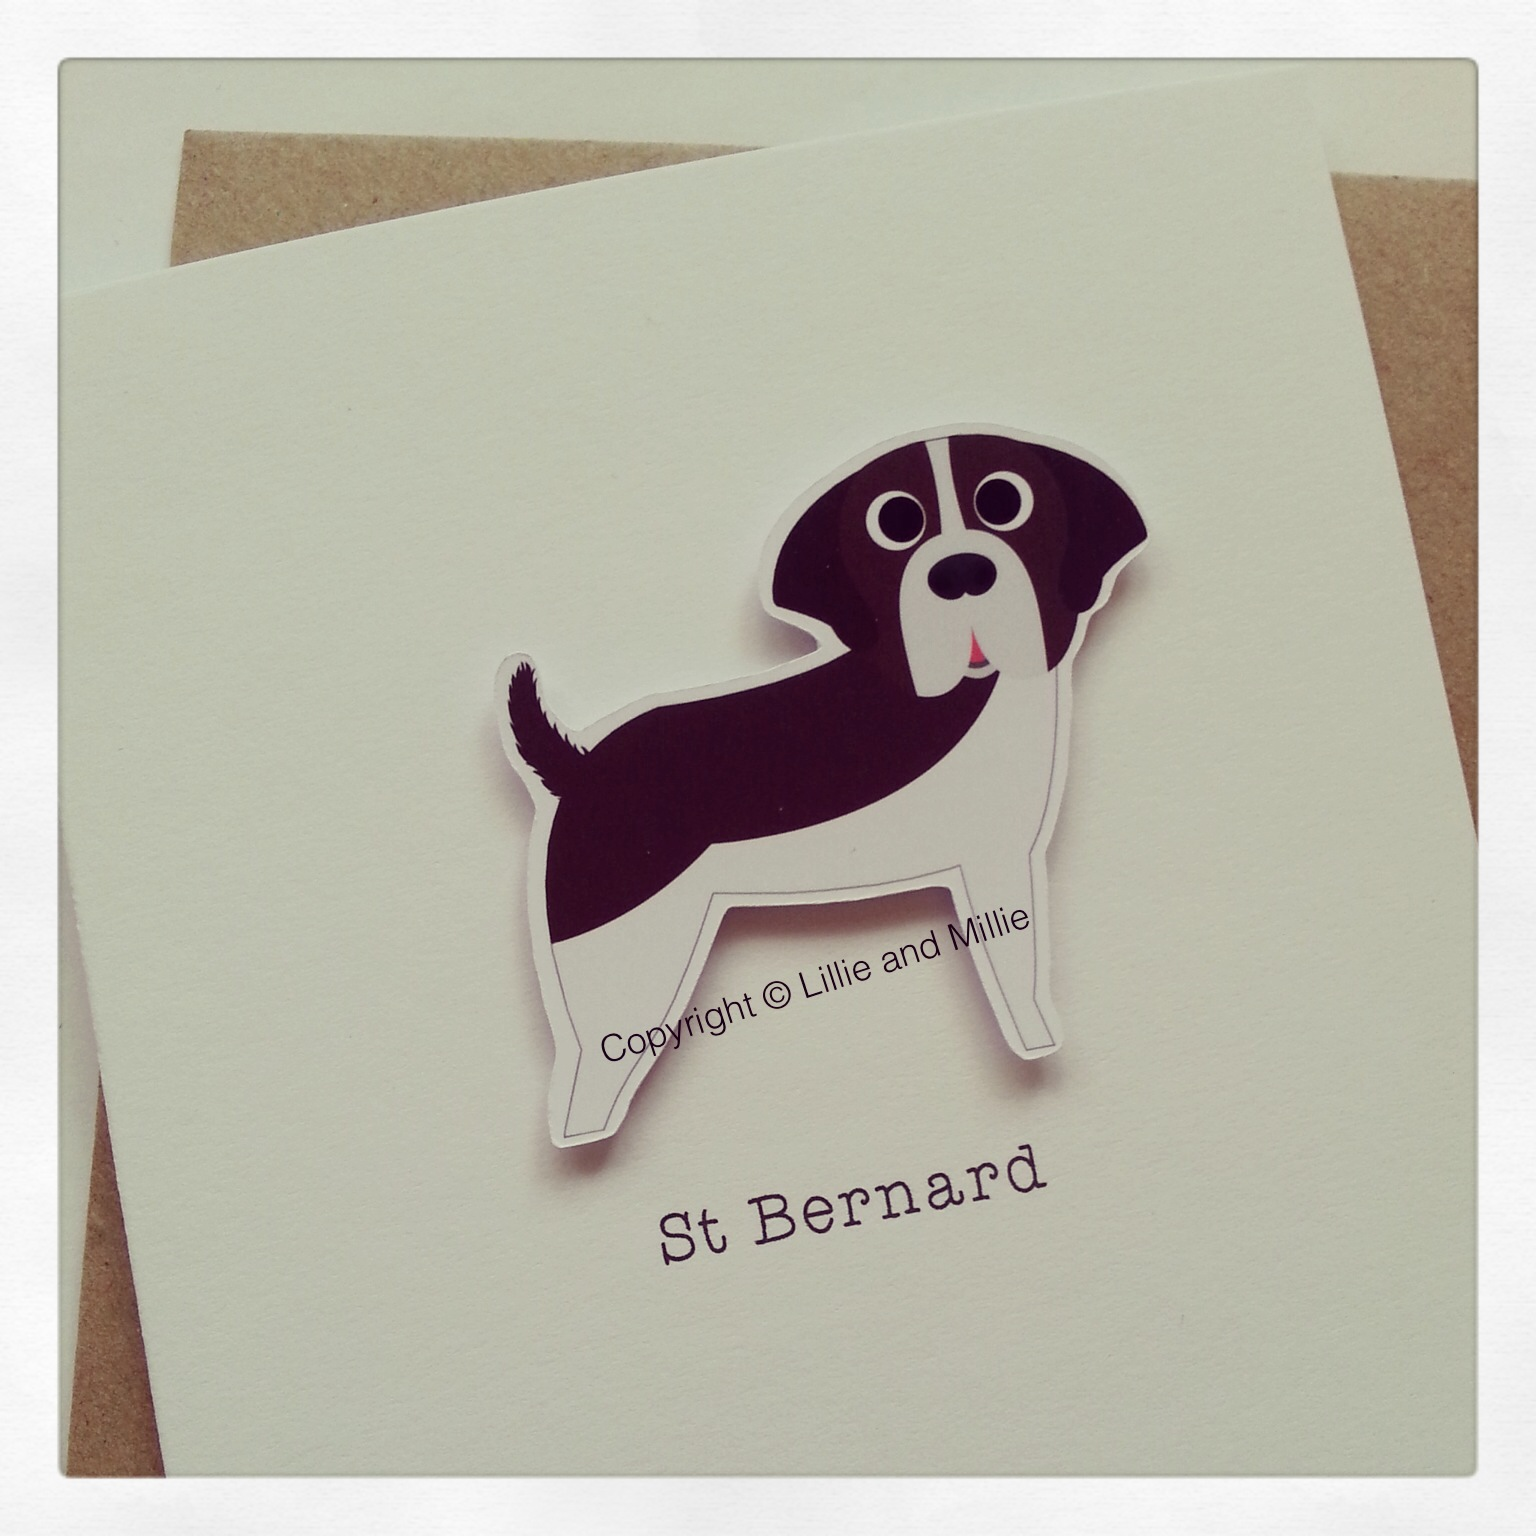 St Bernard Dog Greetings Card